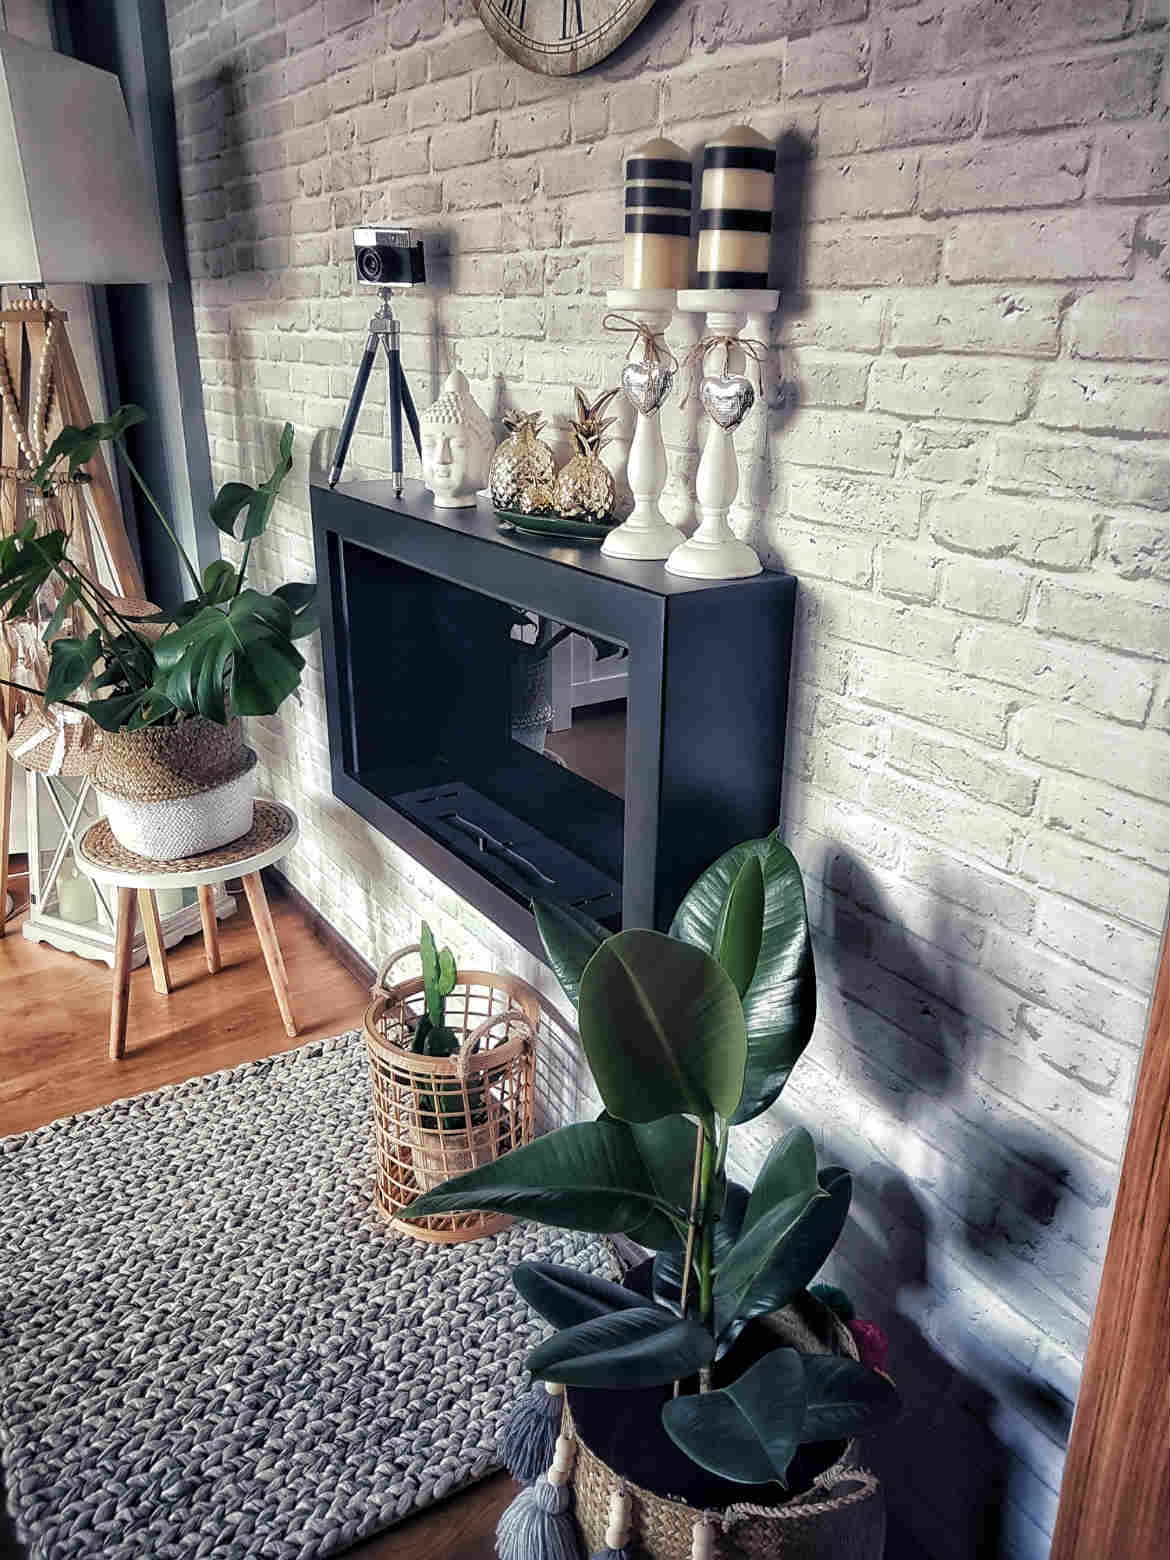 beautiful-hygge-braided-wool-rug-under-the-fireplace-jungalow-vibe